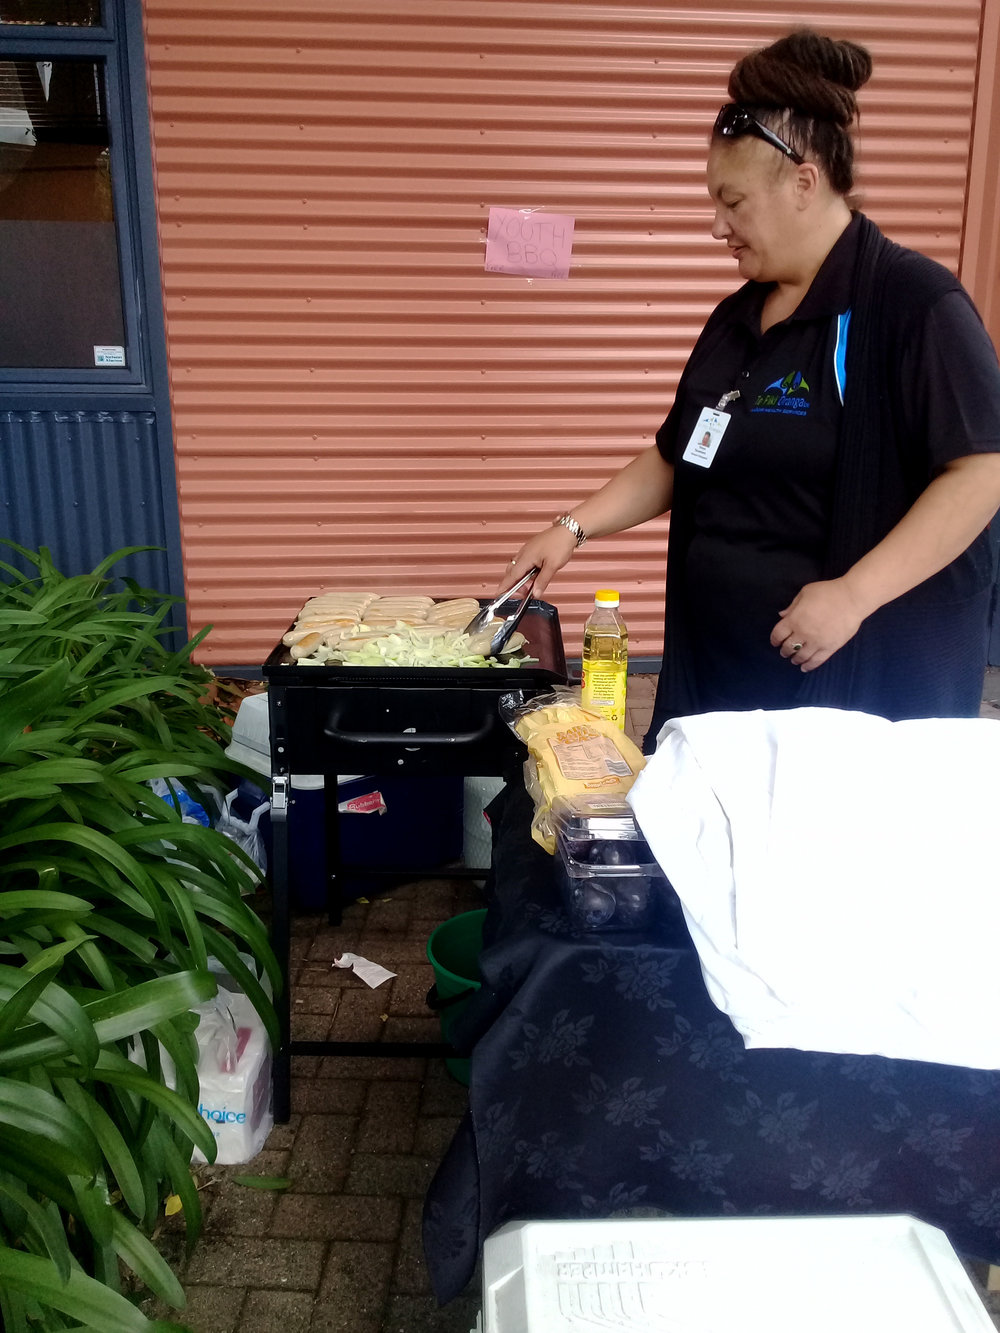 Tanya Tauwhare of Te Piki Oranga loves feeding the rangatahi at the library with some healthy kai.